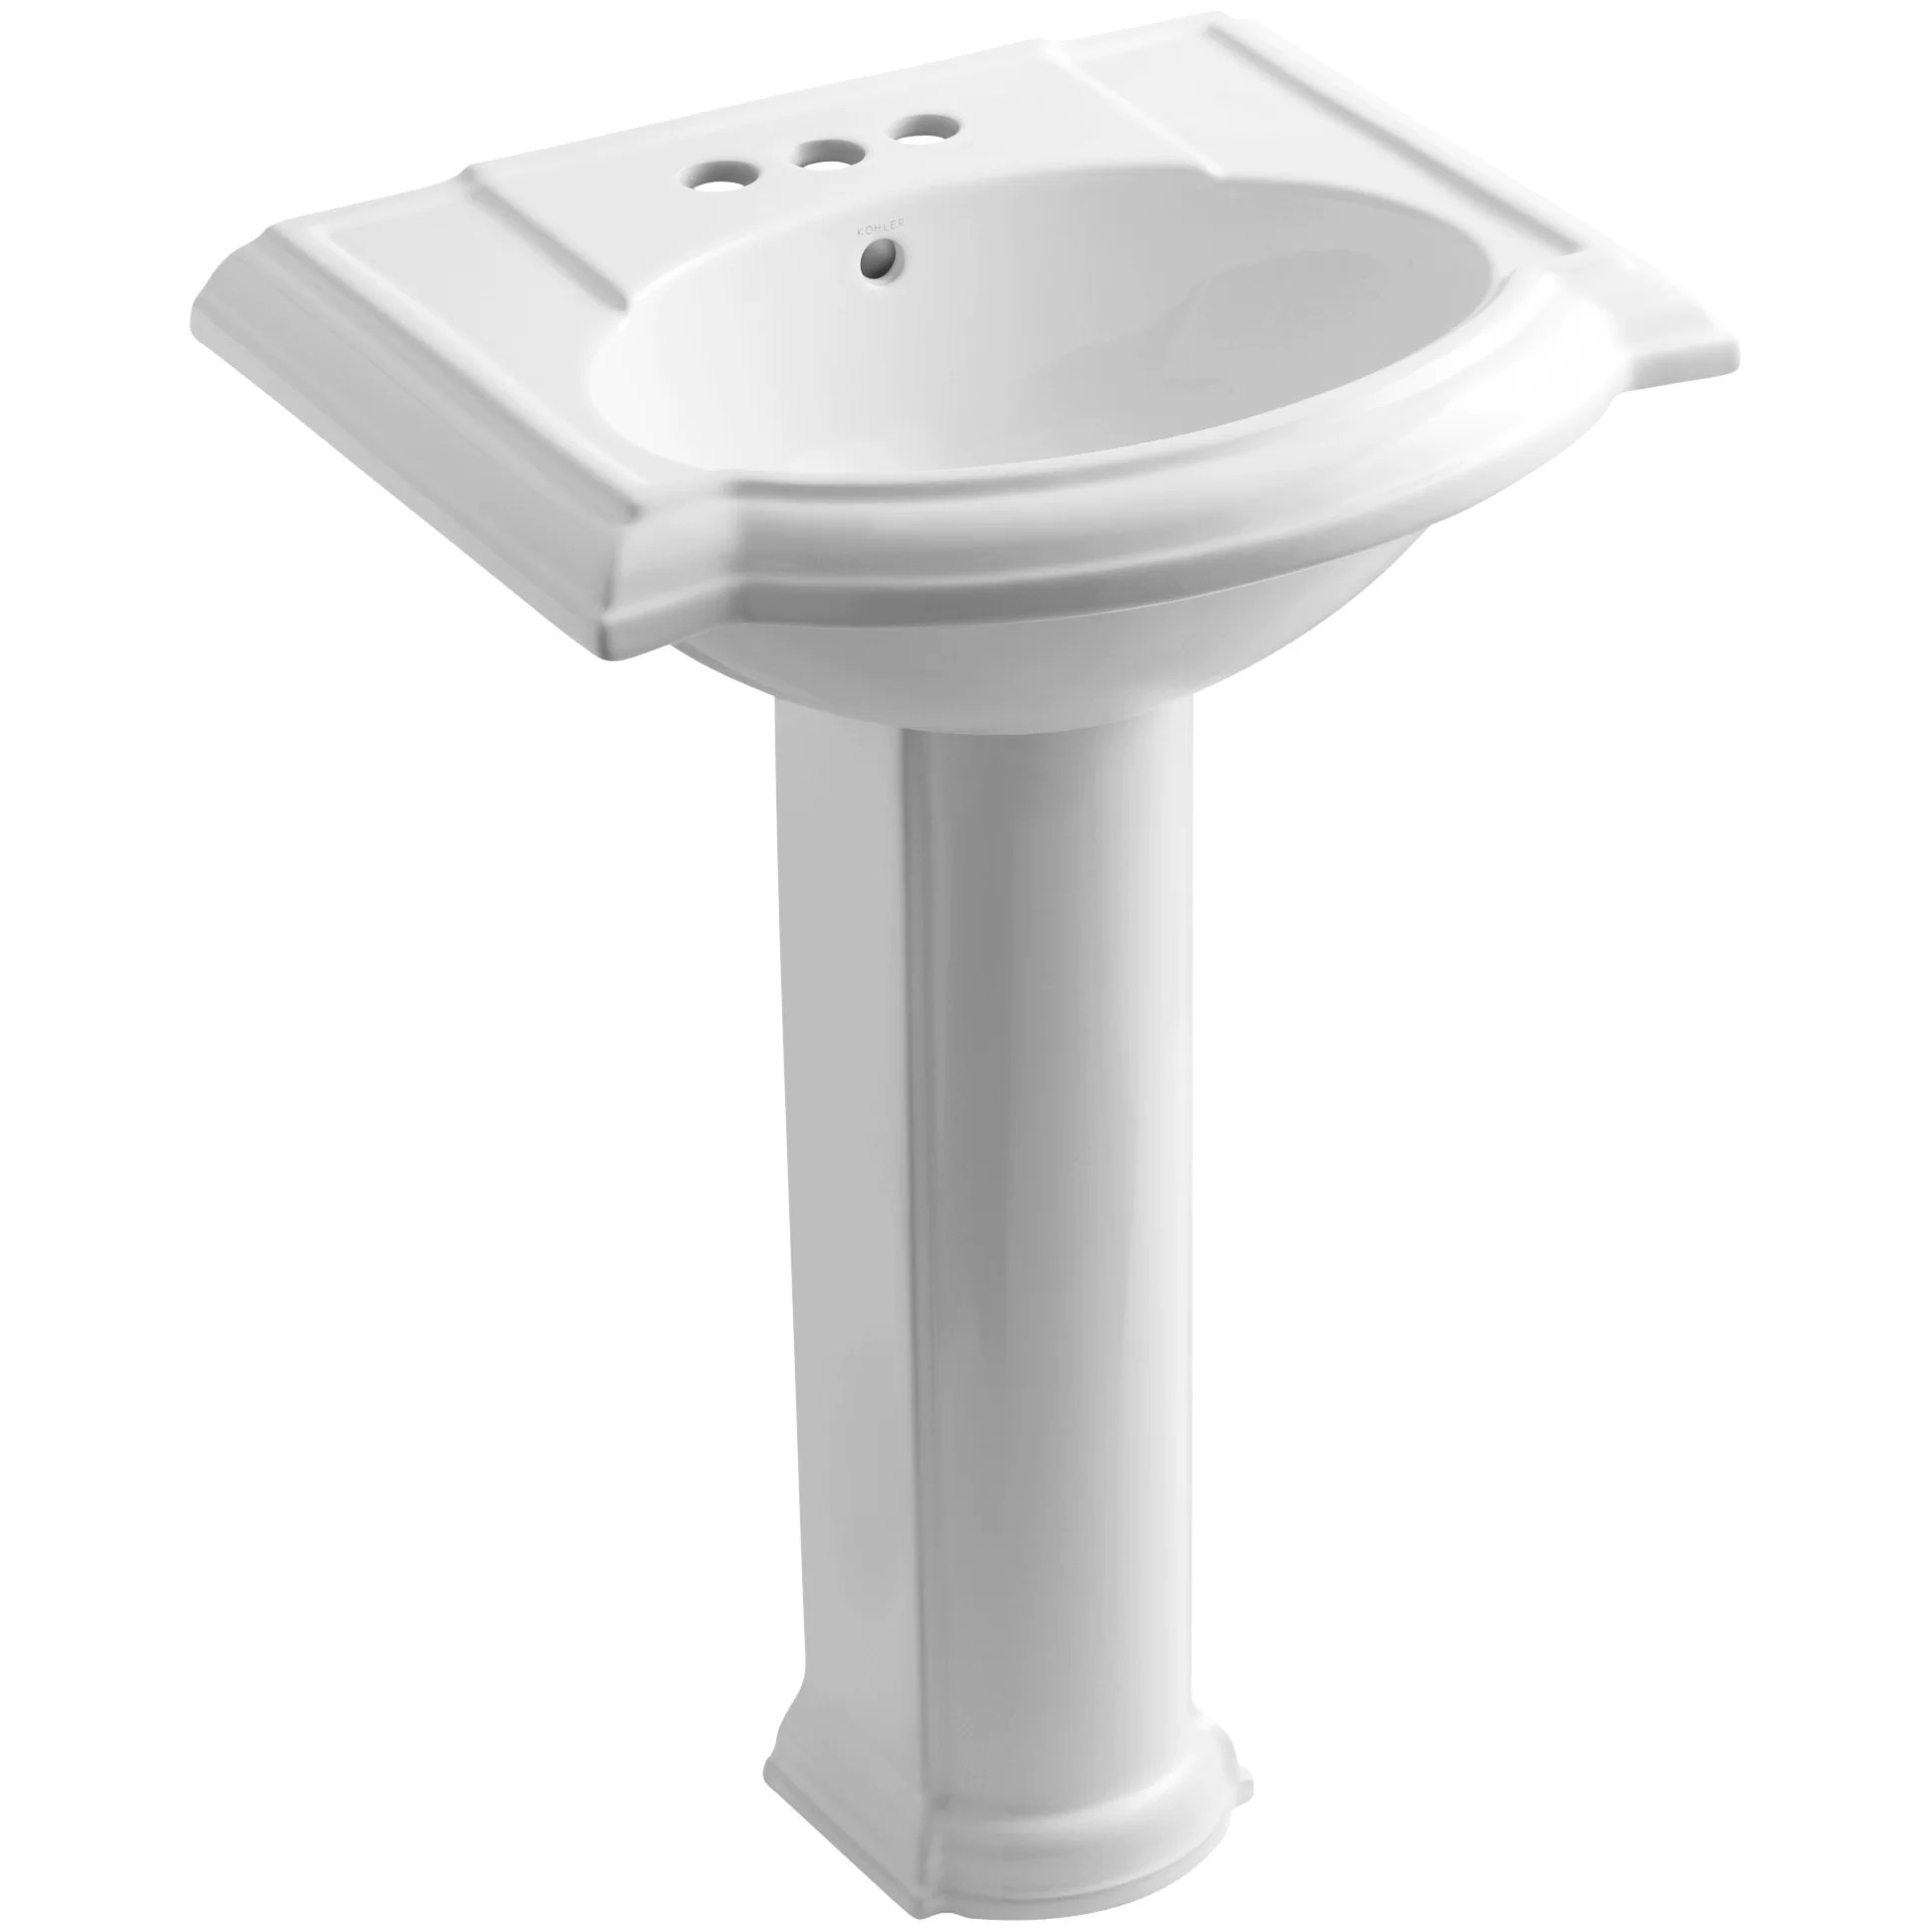 Industrial Pedestal Sink Kohler Devonshire 24 Quot Pedestal Bathroom Sink And Reviews